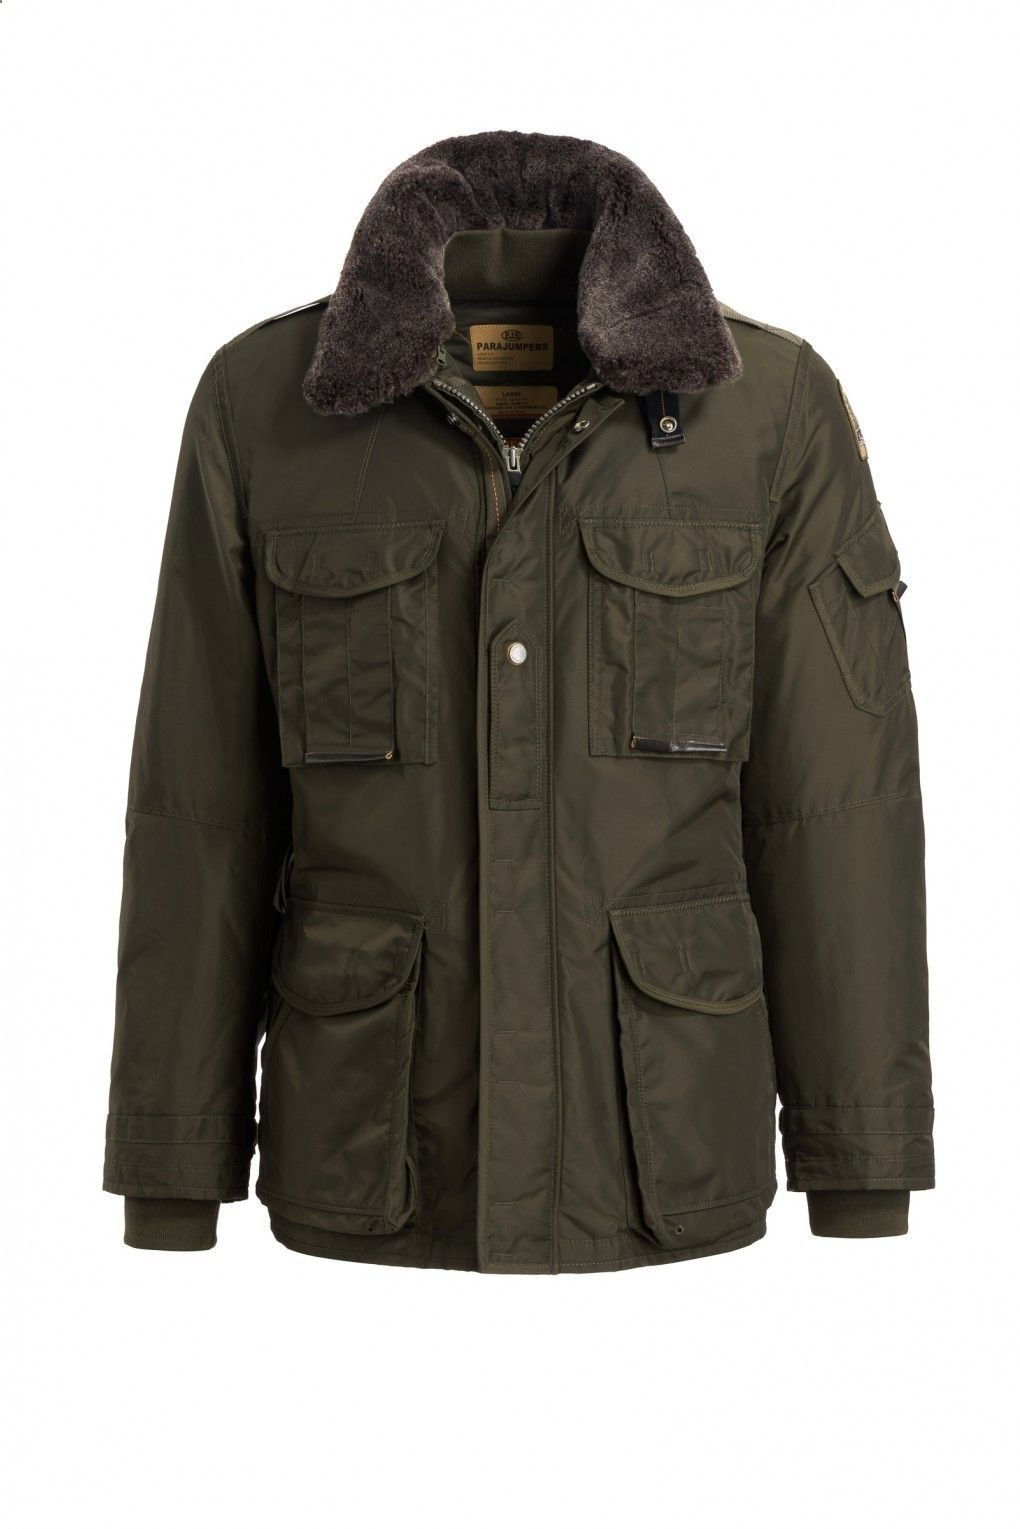 Parajumpers Mens Portland Jacket in Olive Green Last one!